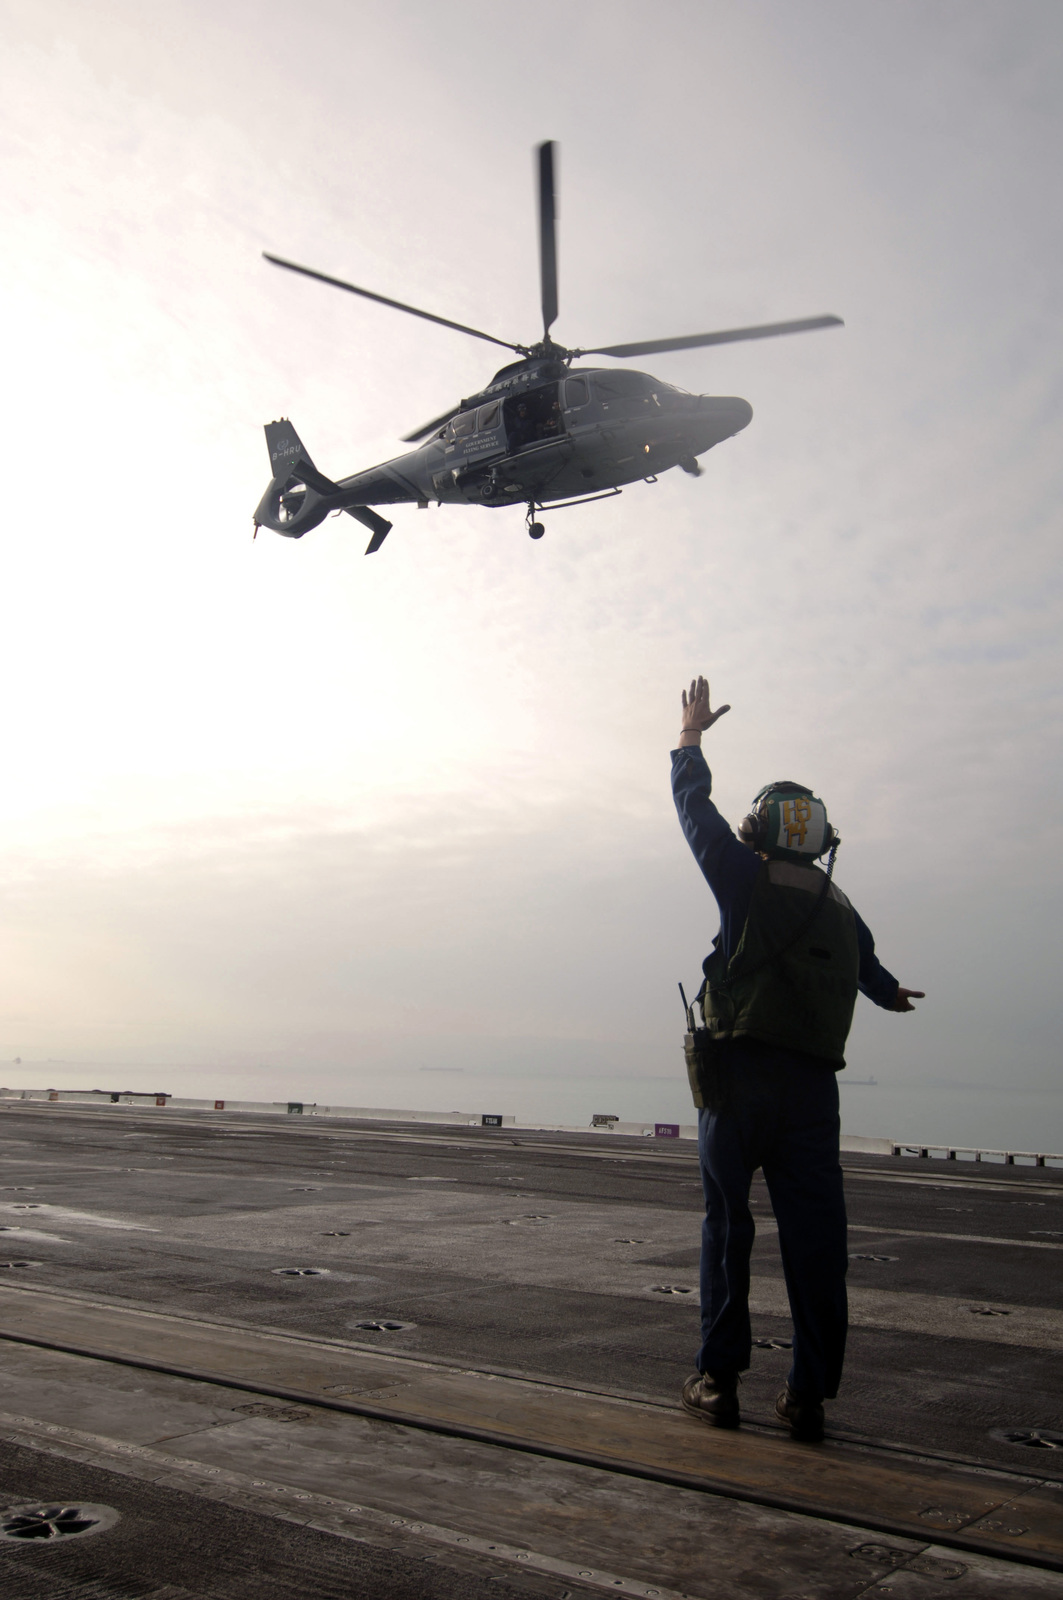 U.S. Navy AIRMAN Jeremy Donley directs a Hong Kong Government Flying Service-owned EC155B1 multi-purpose helicopter as it prepares to land on the flight deck aboard the Kitty Hawk Class Aircraft Carrier USS KITTY HAWK (CV 63) on Nov. 23, 2006, while the KITTY HAWK, and embarked Carrier Air Wing 5 (CVW-5), enter Victoria Harbor for a scheduled port call to Hong Kong (Hong Kong Special Administrative Region), People's Republic of China. (U.S. Navy photo by Mass Communication SPECIALIST SEAMAN Jimmy C. Pan) (Released)